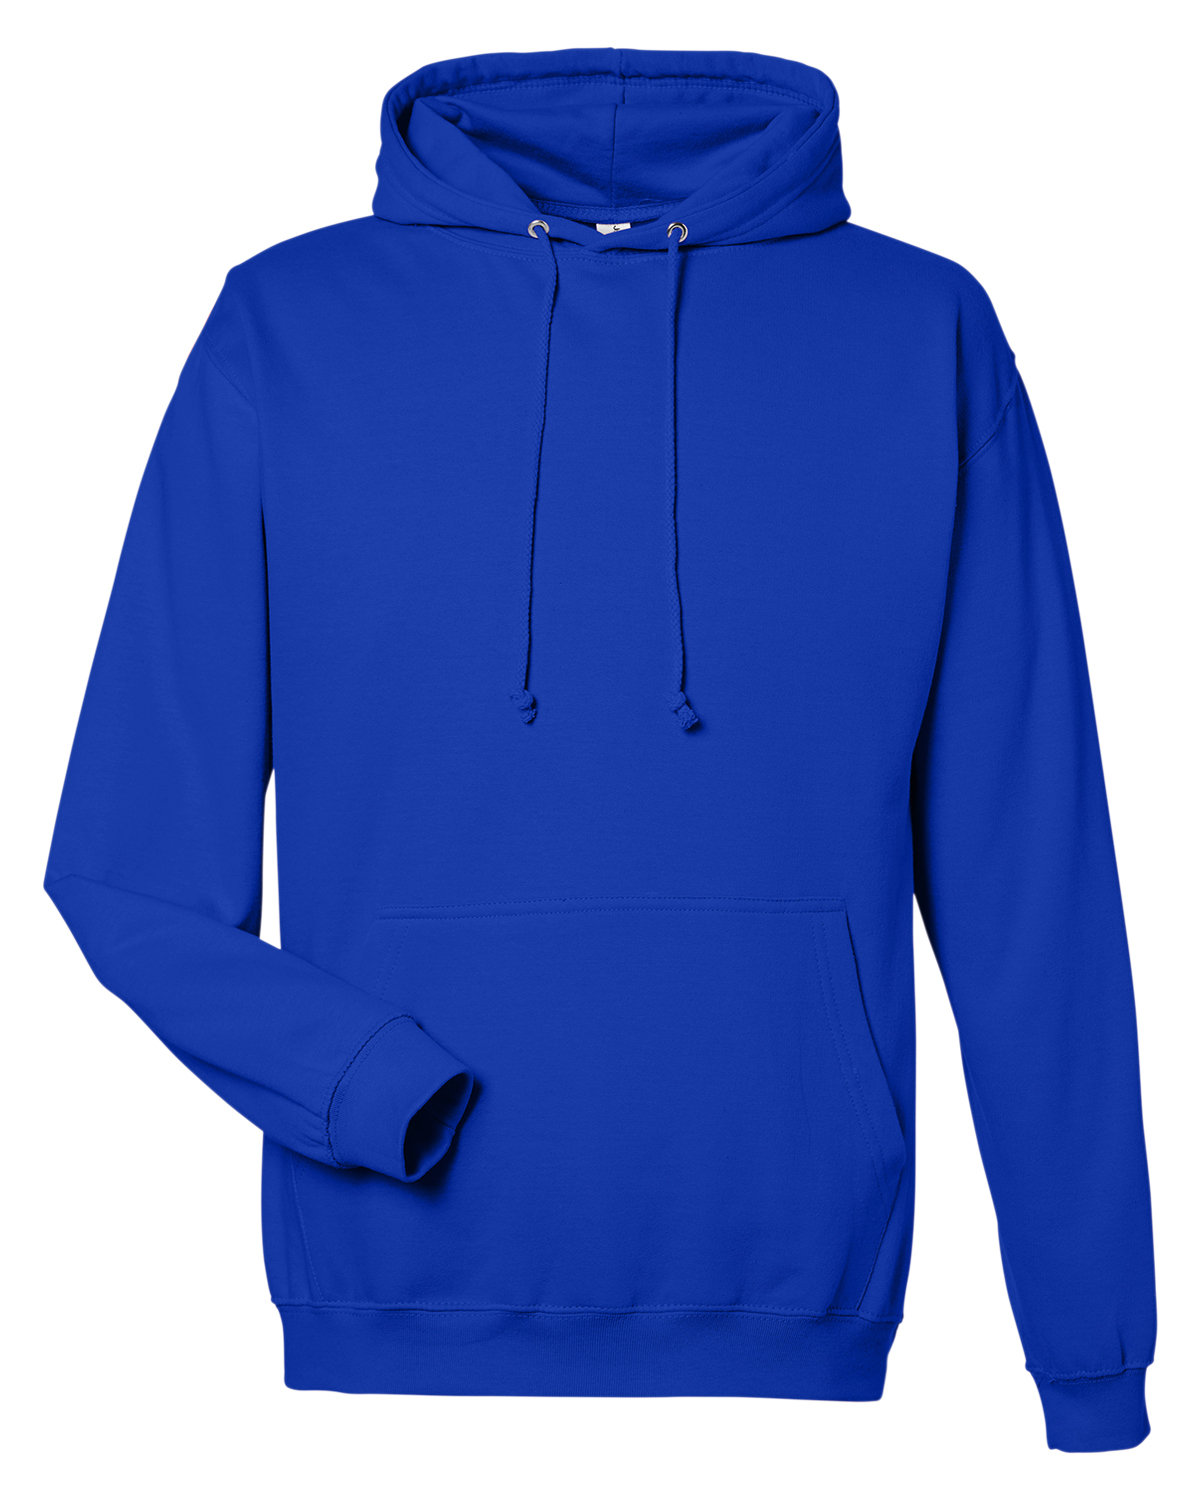 Just Hoods By AWDis Men's 80/20 Midweight College Hooded Sweatshirt ROYAL BLUE